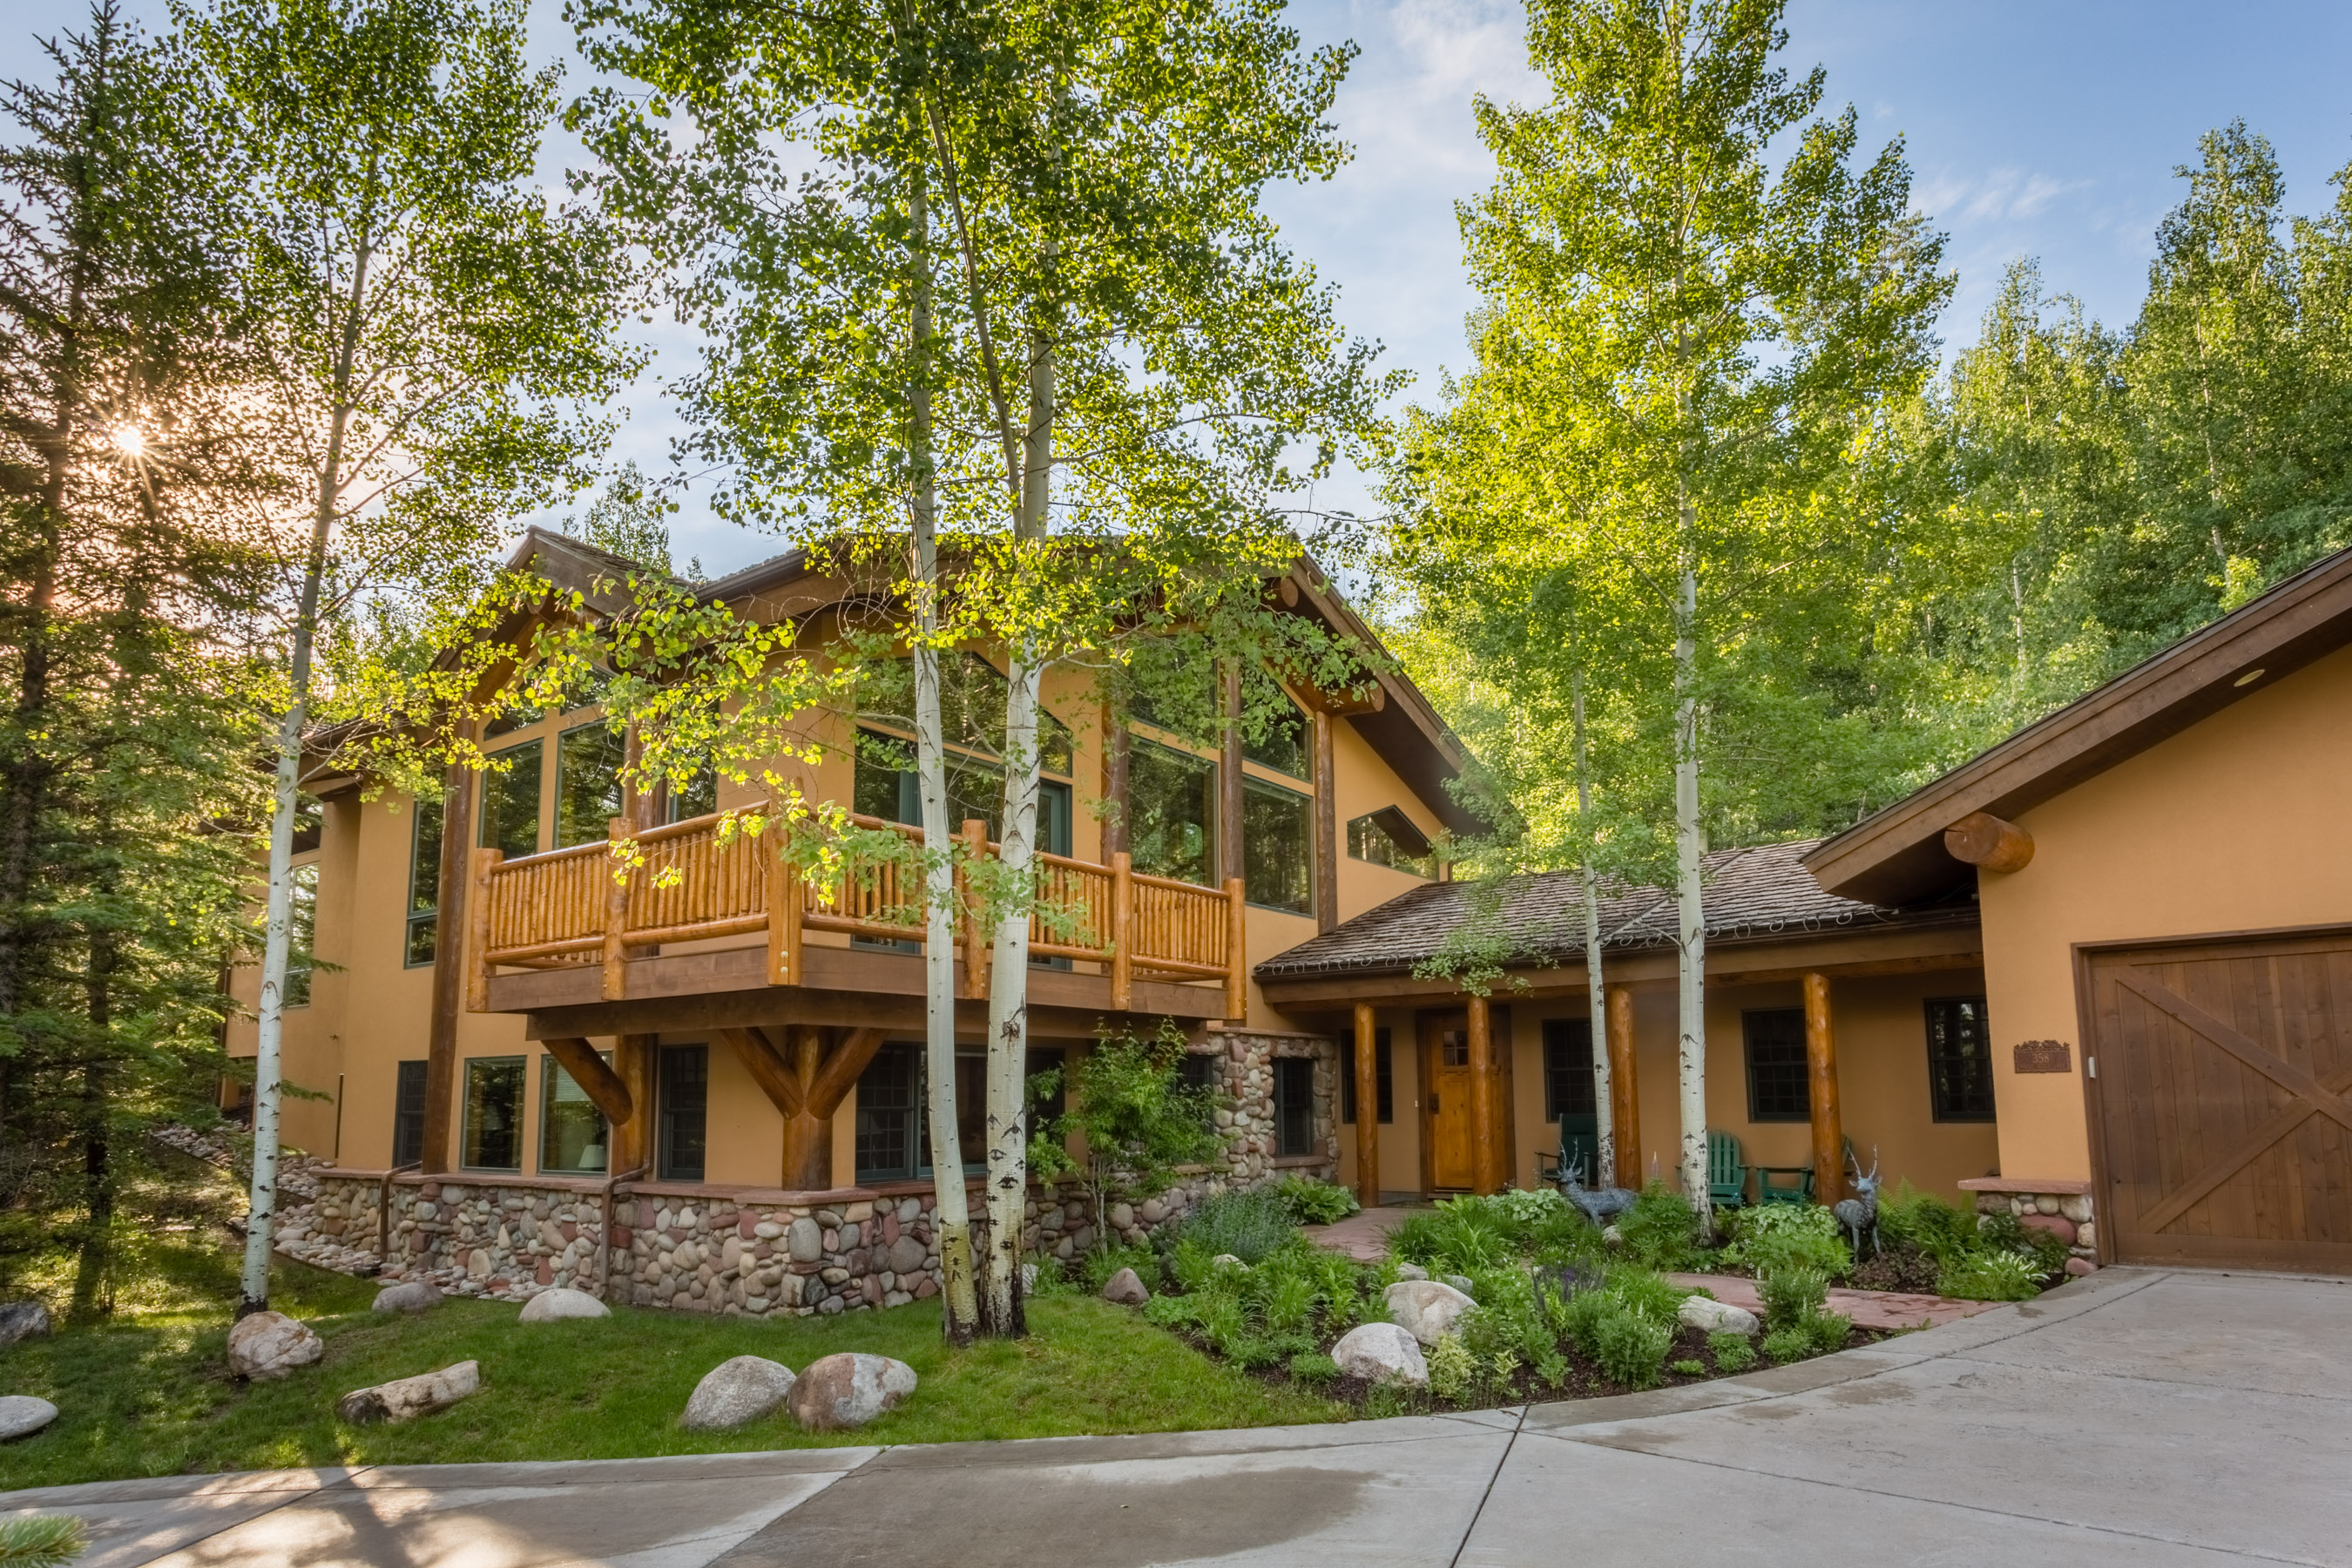 단독 가정 주택 용 매매 에 Warm, Elegant Snowmass Home 358 Maple Ridge Ln Snowmass Village, 콜로라도, 81615 미국